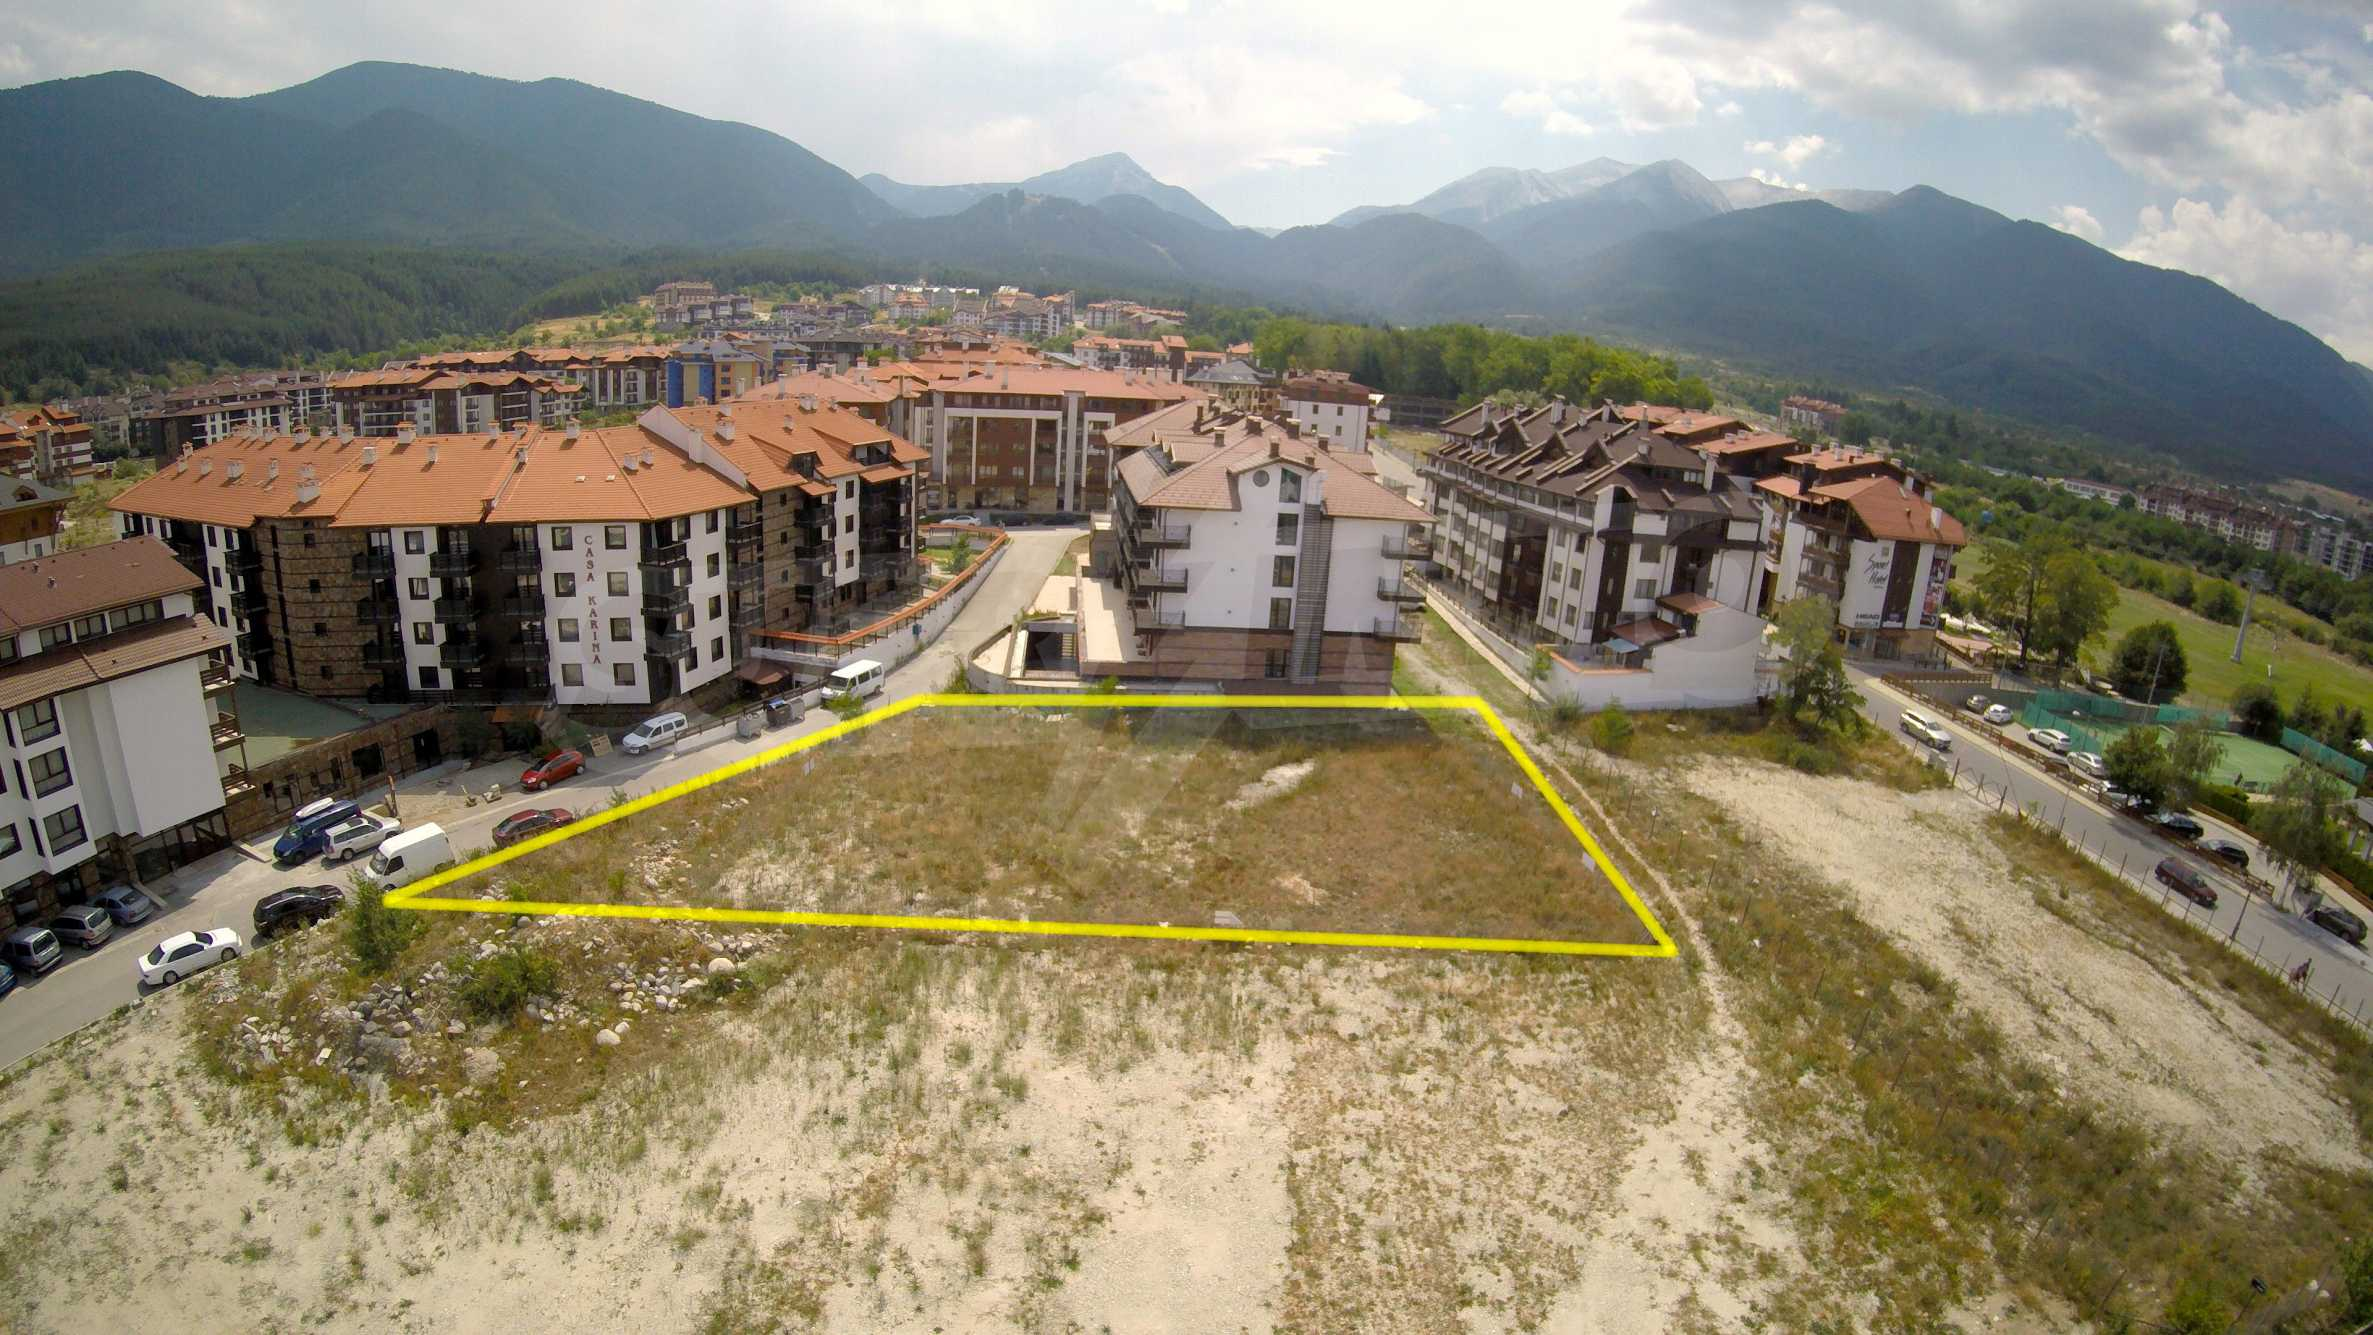 Chateau Blanc: Probably the best investment opportunity in Bansko... 24